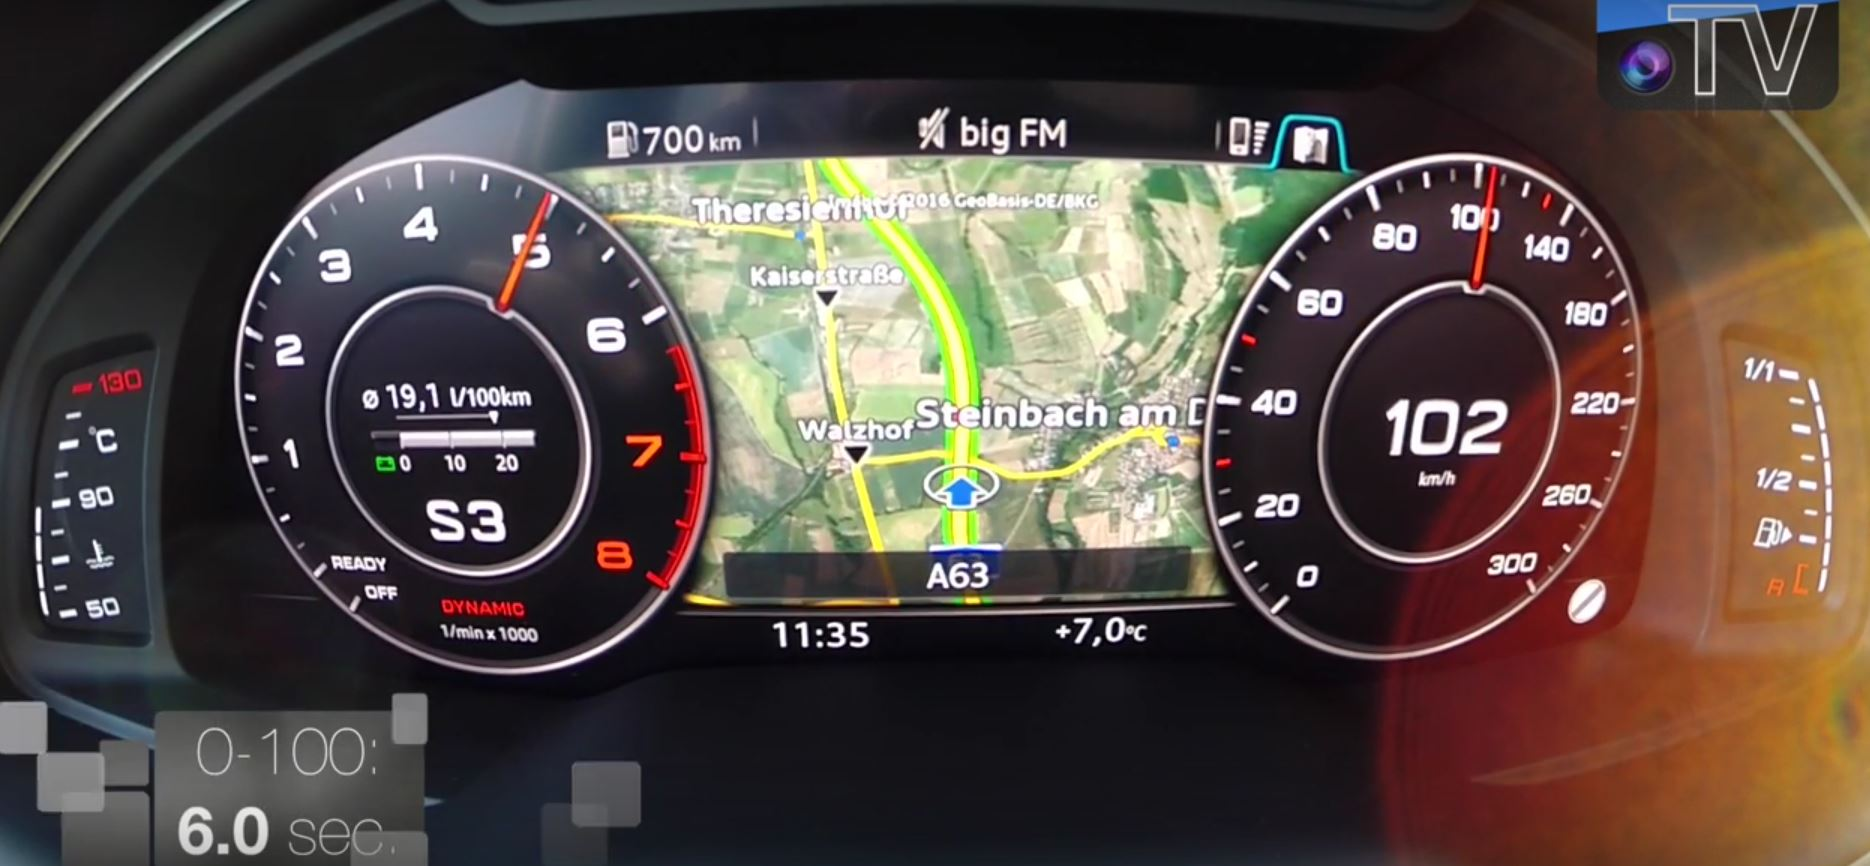 Audi Q Tfsi Acceleration Test To Km H In Seconds